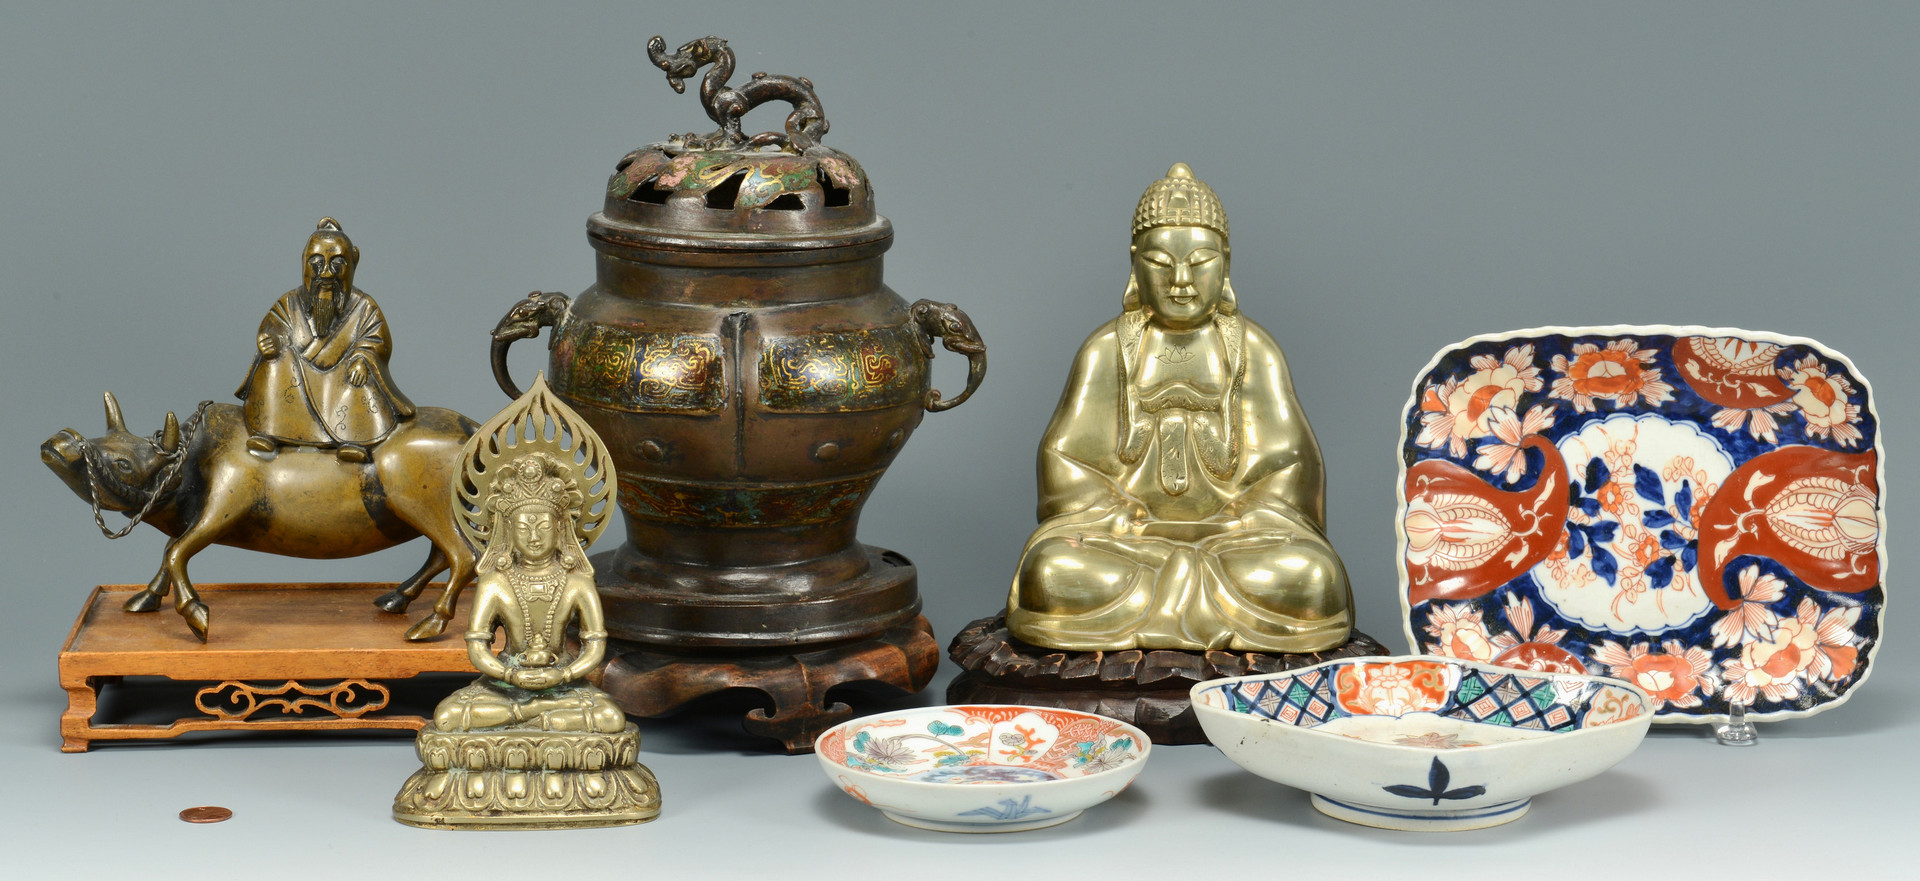 Lot 804: 7 Asian decorative items